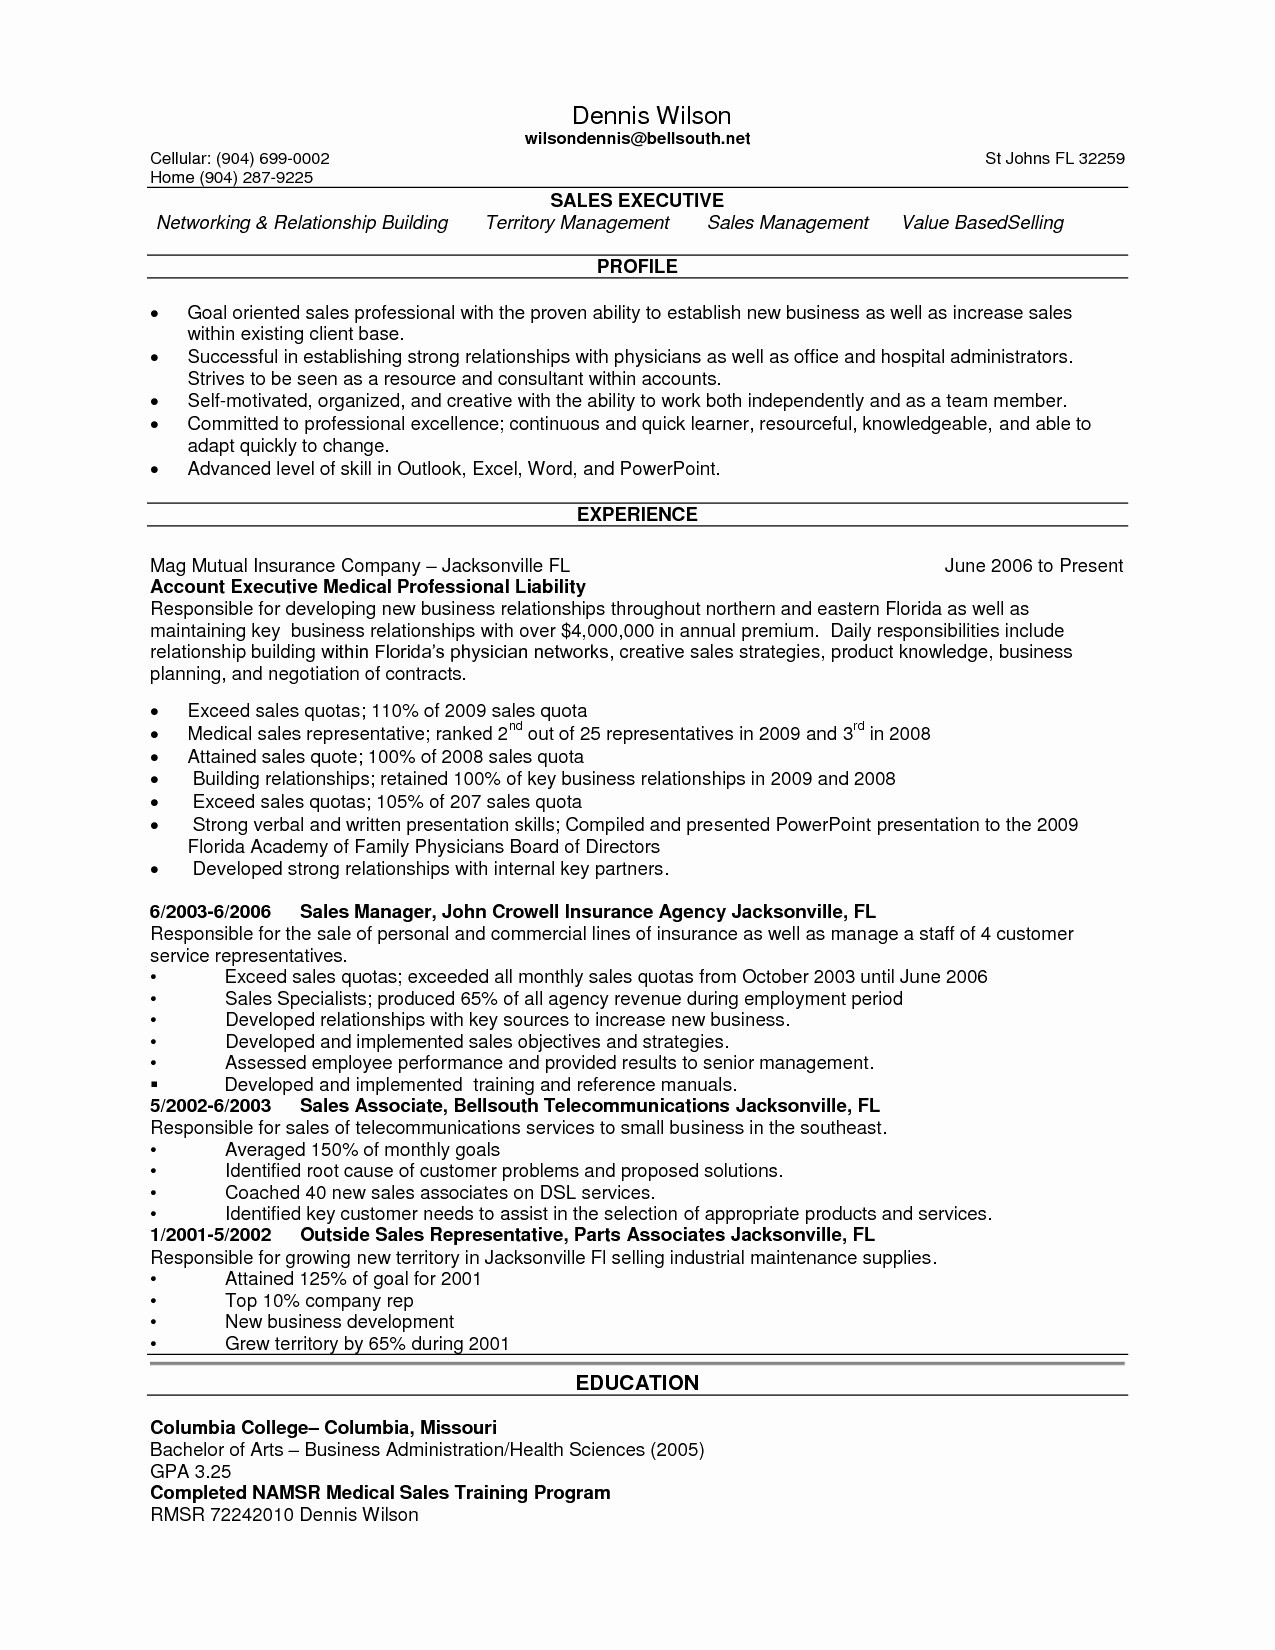 sales representative job description resume Collection-Inside Sales Representative Resume Best Pharmaceutical Cv Examples Fresh Sales Rep Resume Pharmaceutical Inside 18-o